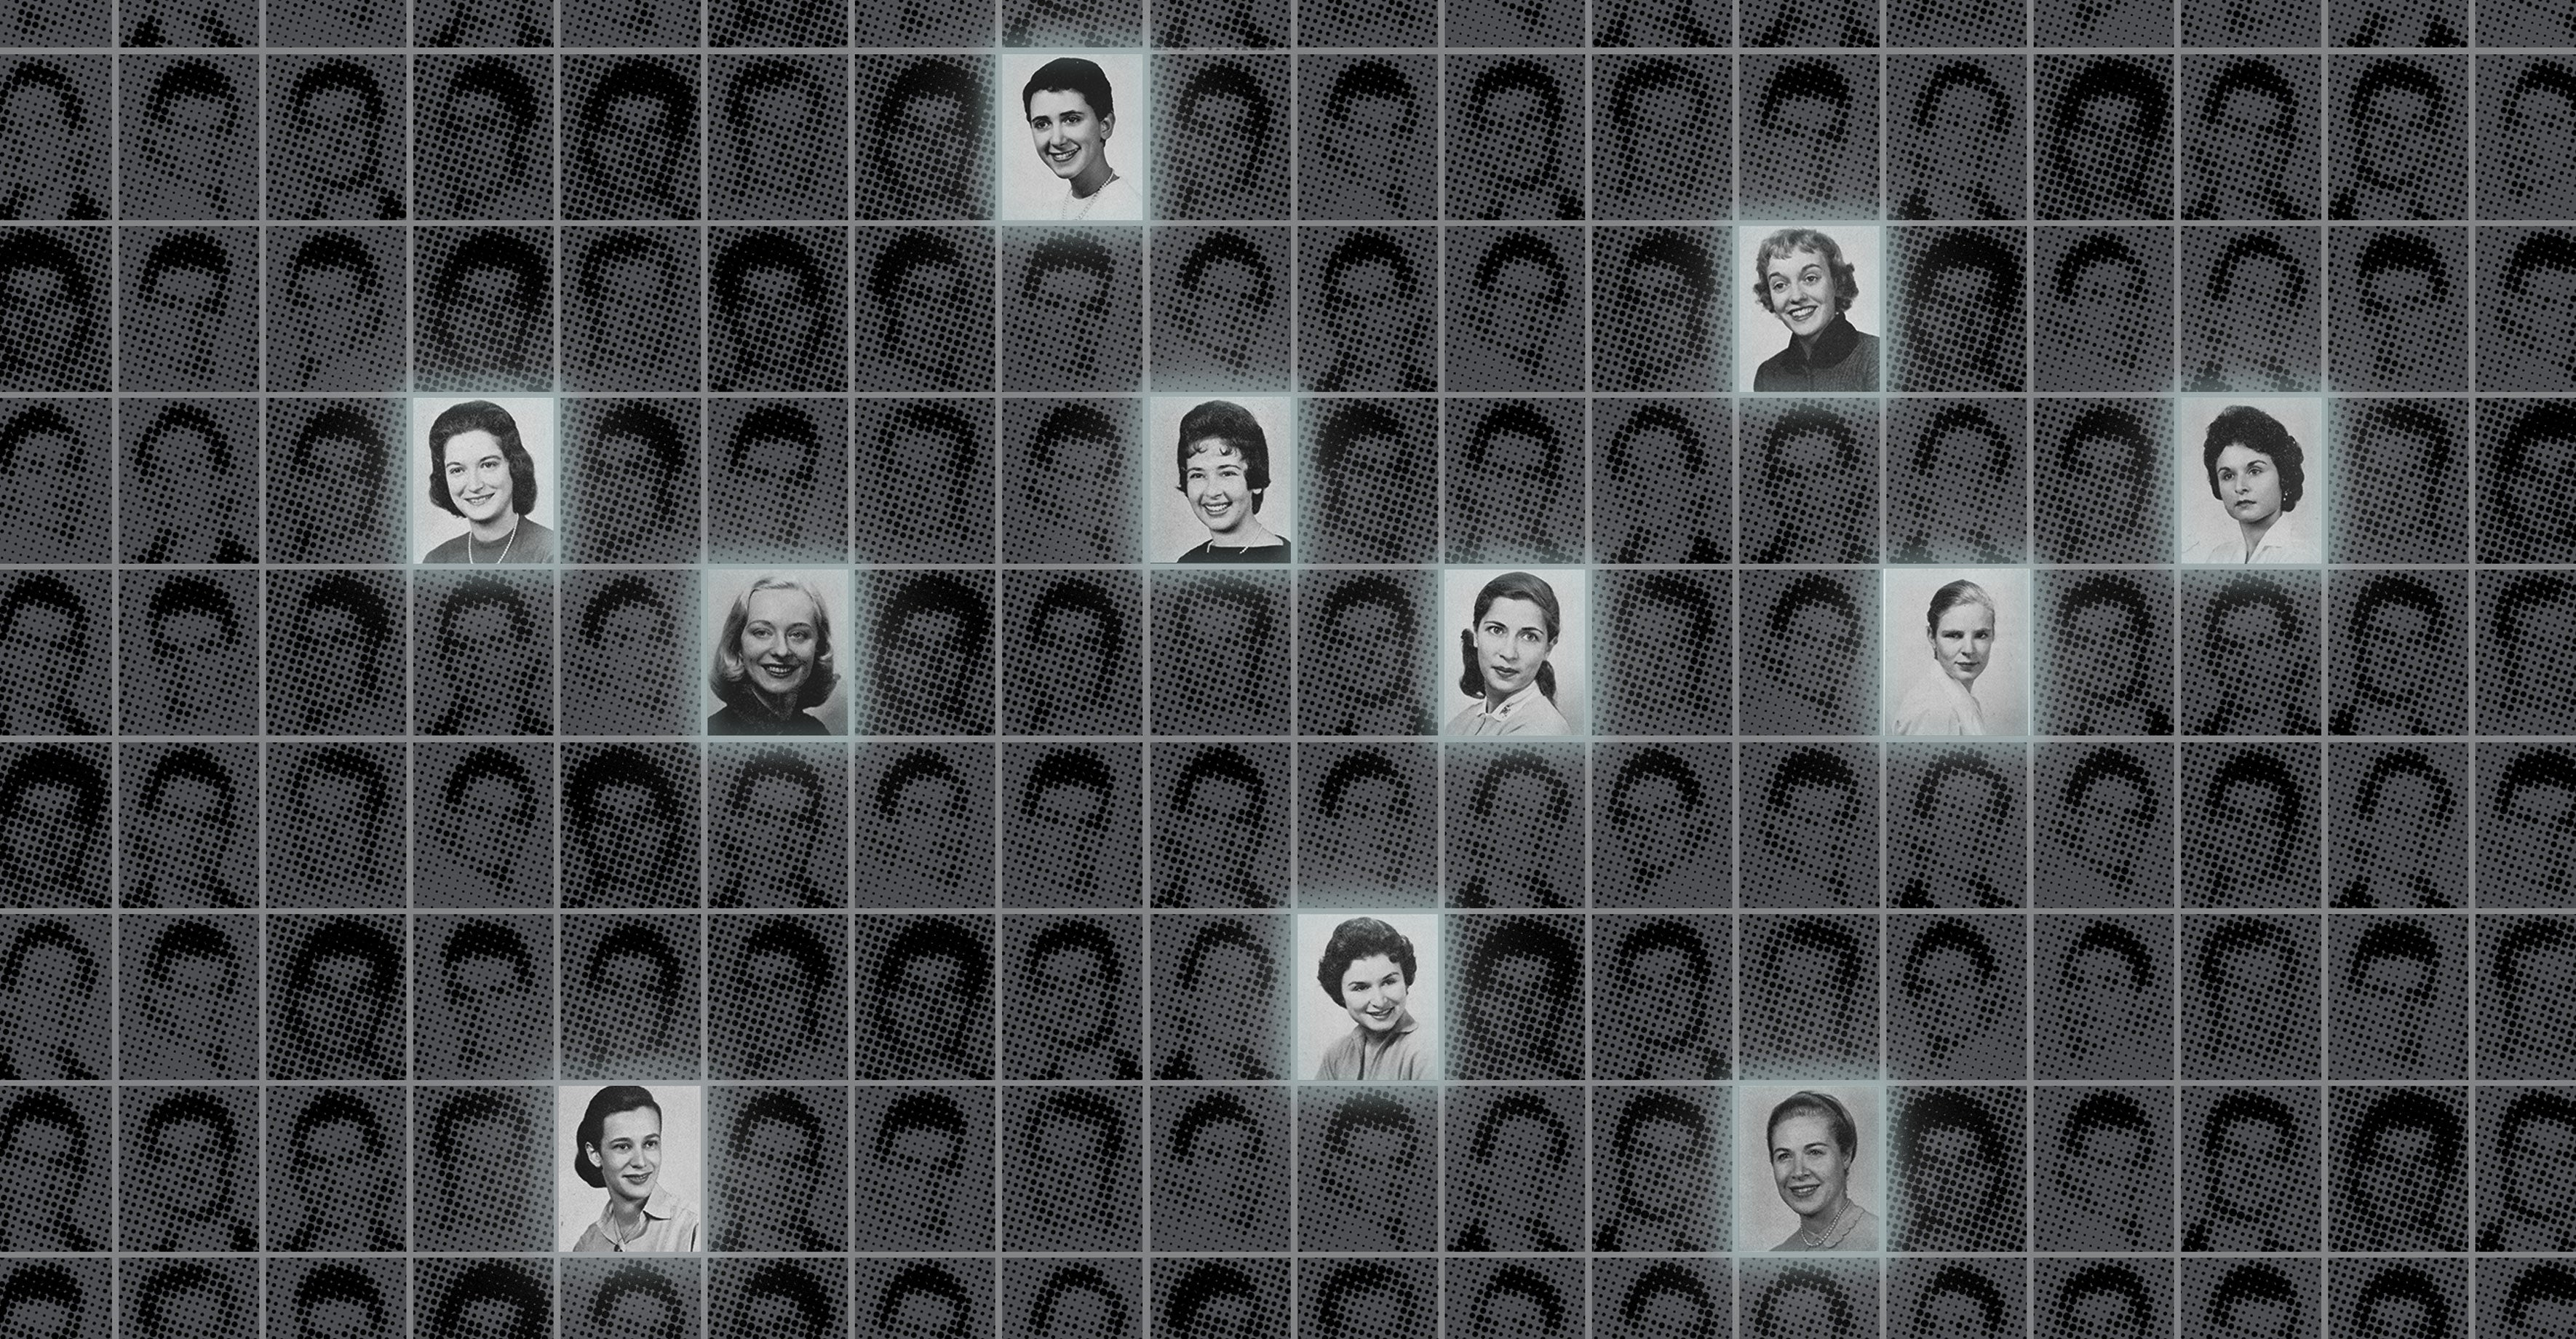 Yearbook photos of the women mentioned in the article against the background of yearbook photos of anonymous men.